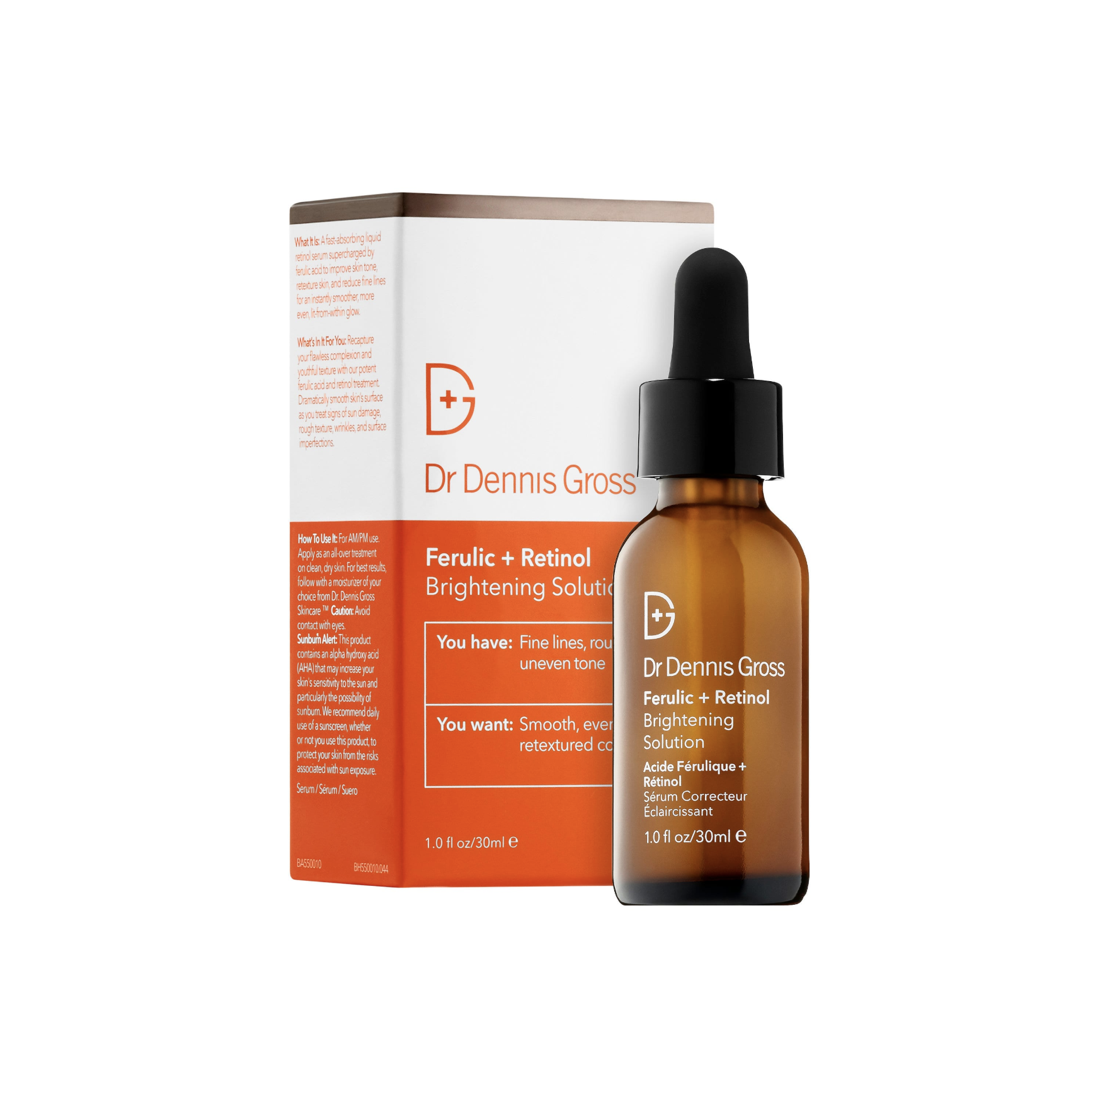 """<p><strong>Dr. Dennis Gross Skincare</strong></p><p>sephora.com</p><p><strong>$88.00</strong></p><p><a href=""""https://go.redirectingat.com?id=74968X1596630&url=https%3A%2F%2Fwww.sephora.com%2Fproduct%2Fferulic-acid-retinol-brightening-solution-P375269&sref=http%3A%2F%2Fwww.oprahmag.com%2Fbeauty%2Fg28661550%2Fbest-retinol-serums%2F"""" rel=""""nofollow noopener"""" target=""""_blank"""" data-ylk=""""slk:SHOP NOW"""" class=""""link rapid-noclick-resp"""">SHOP NOW</a></p><p>This multipurpose product contains a number of anti-aging ingredients that work together to minimize the appearance of fine lines, skin discoloration, and stimulate new collagen growth over time, says Shainhouse. Hyaluronic acid hydrates, ferrulic acid helps reduce free radical damage, alpha-hydroxyacids gently exfoliate, and retinol stimulates new collagen growth. </p>"""